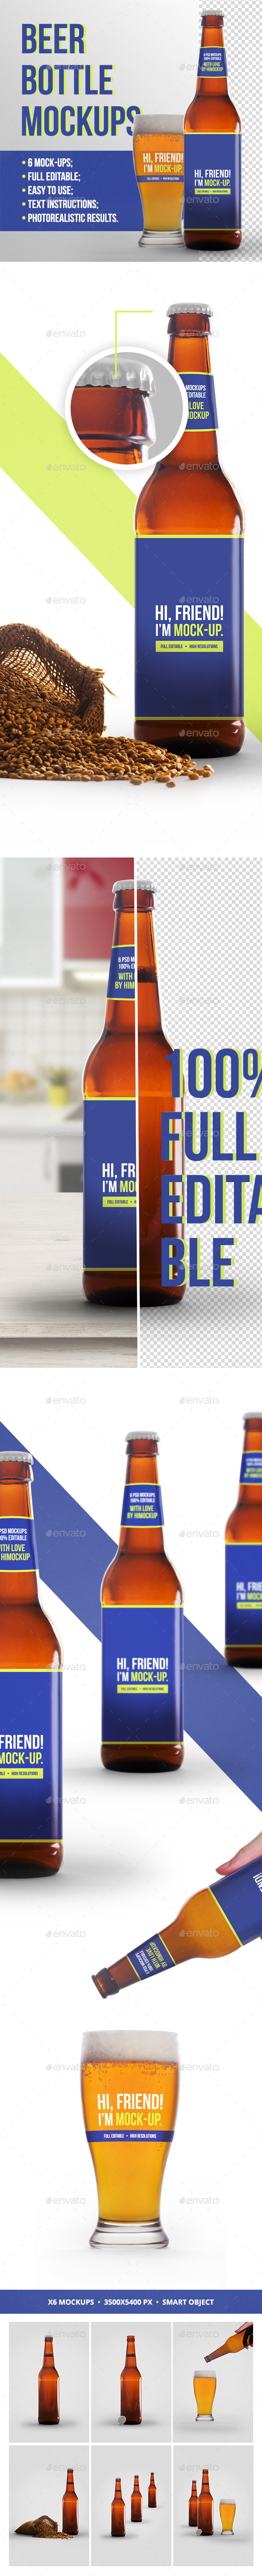 Beer Bottle Mockup 3 - Food and Drink Packaging